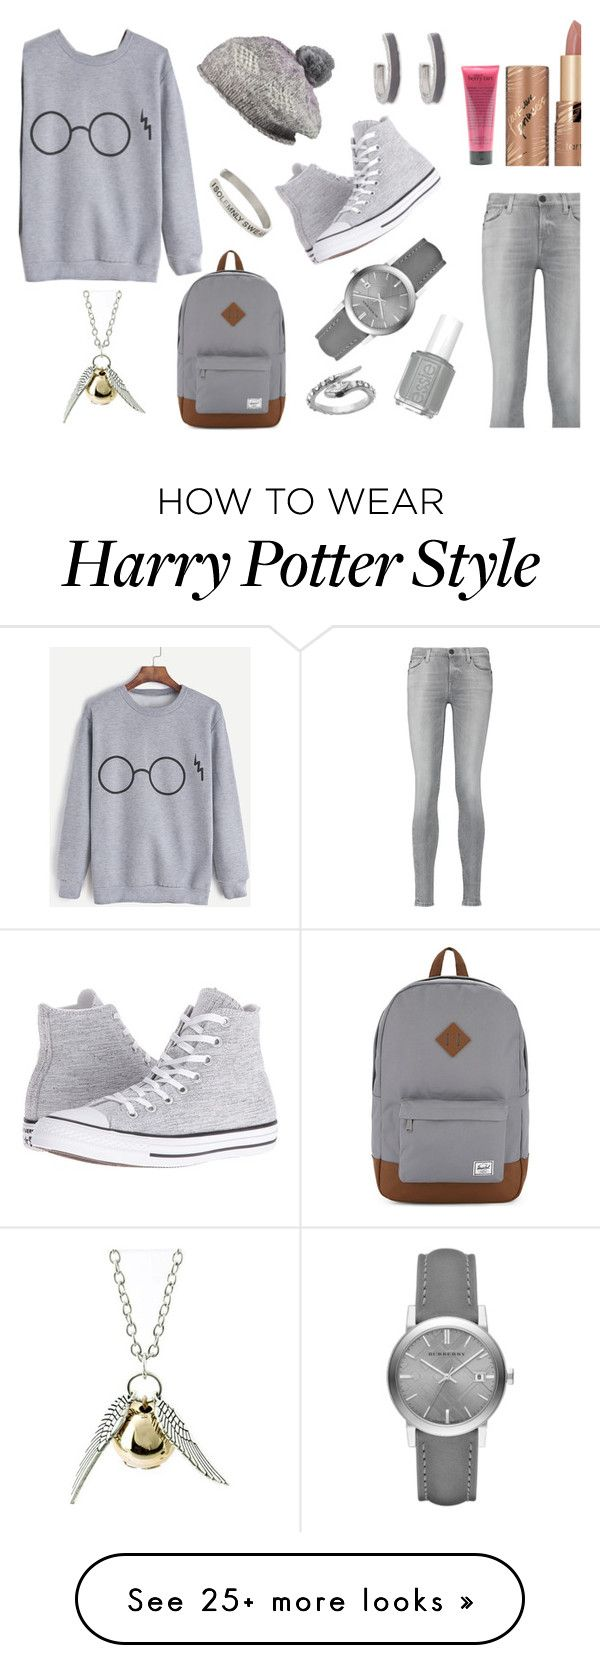 """Grey Sweatshirt *_*"" by basmahahmed on Polyvore featuring 7 For All Mankind, Converse, Herschel Supply Co., Pistil, Burberry, Erica Lyons, tarte, Quiksilver, Warner Bros. and Blu Bijoux"